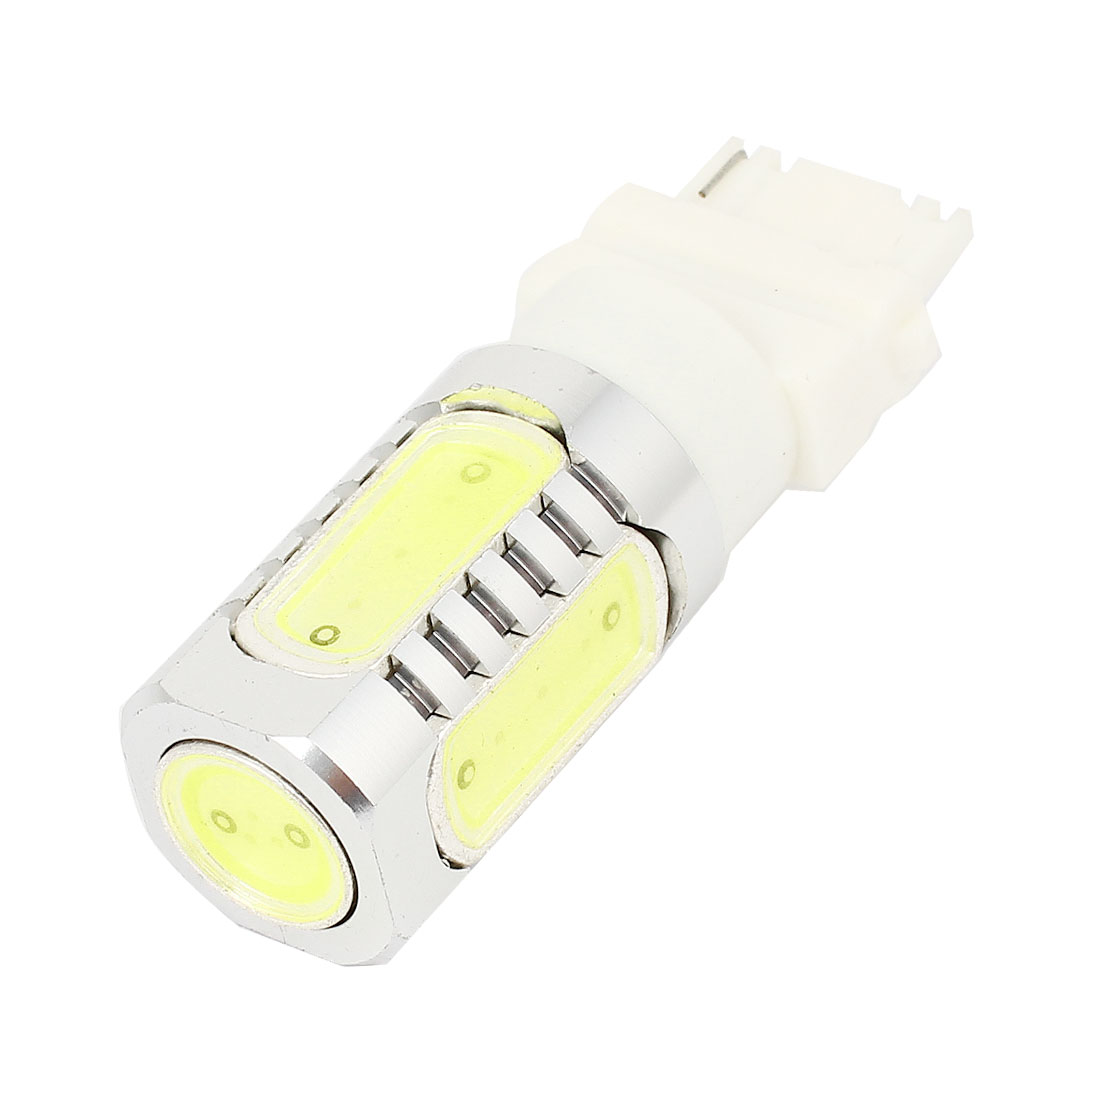 White 3156 7.5W 5 LED Lens Car Reversing Braking Signal Light Turning Lamp 12V